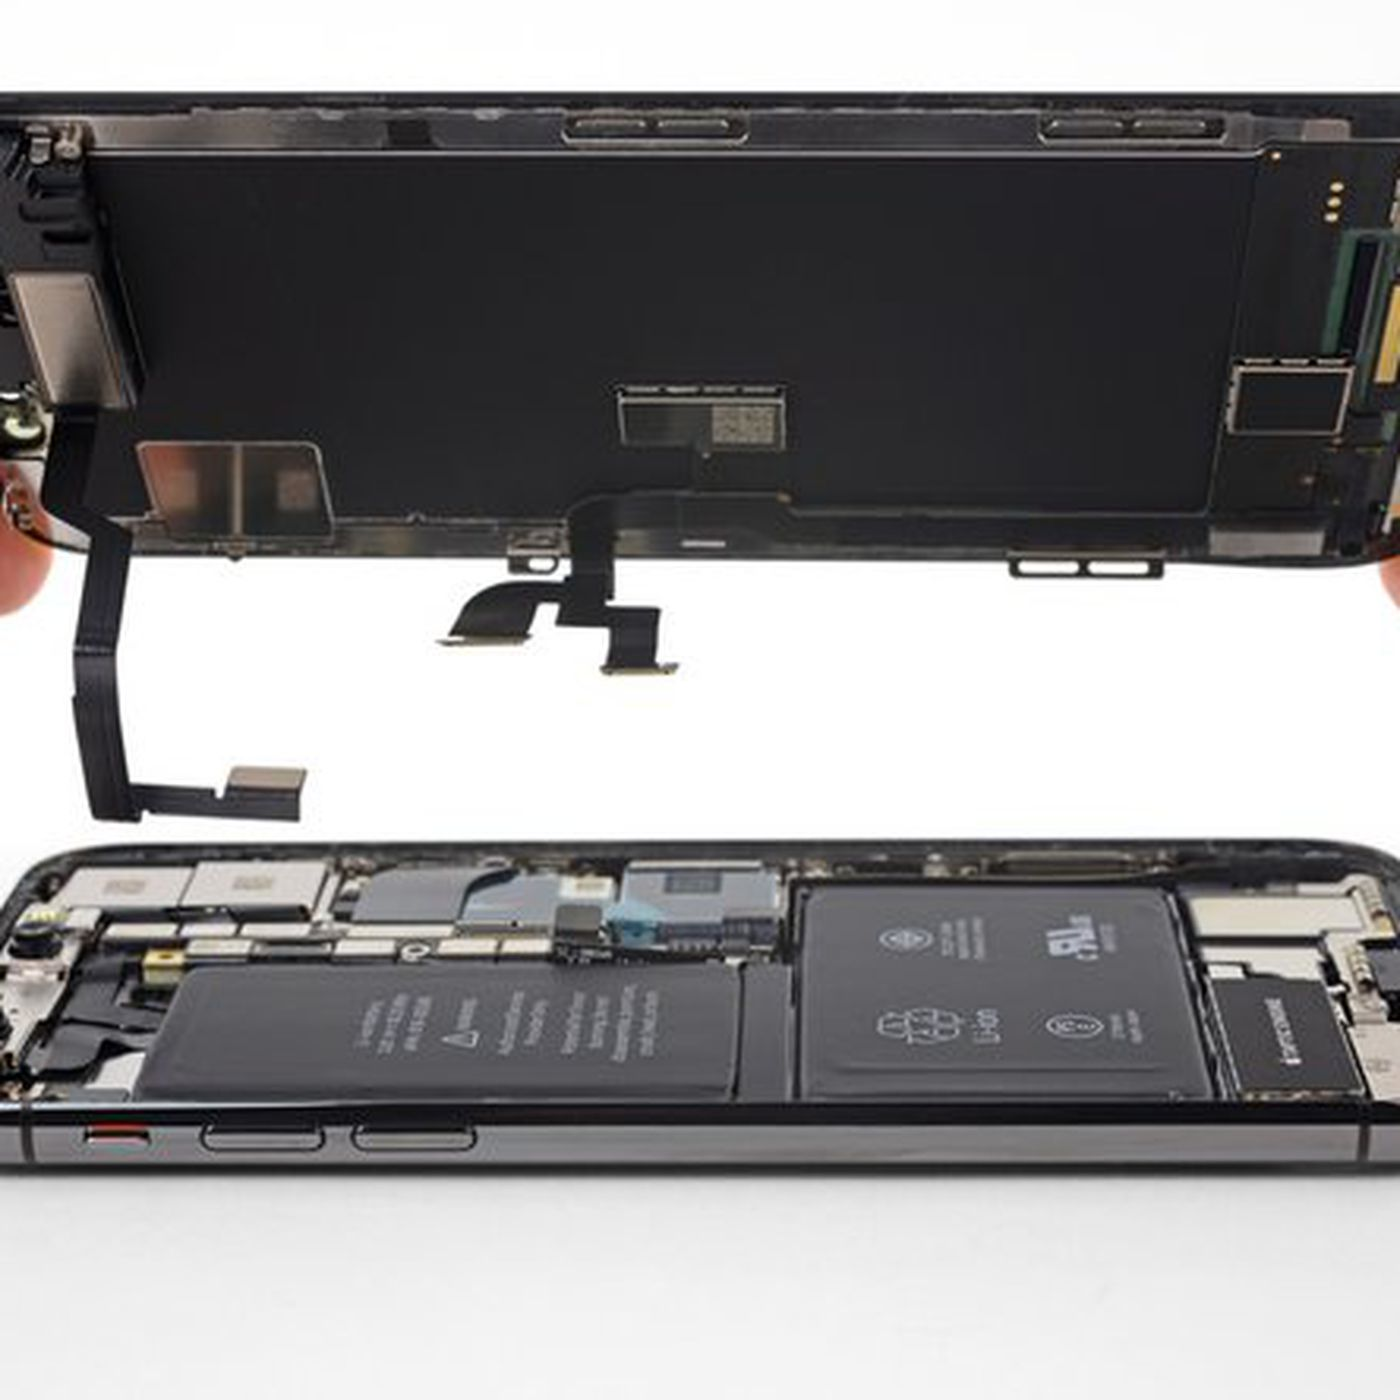 best sneakers d4de9 0f078 Apple will now reportedly fix iPhones even if you've replaced the ...